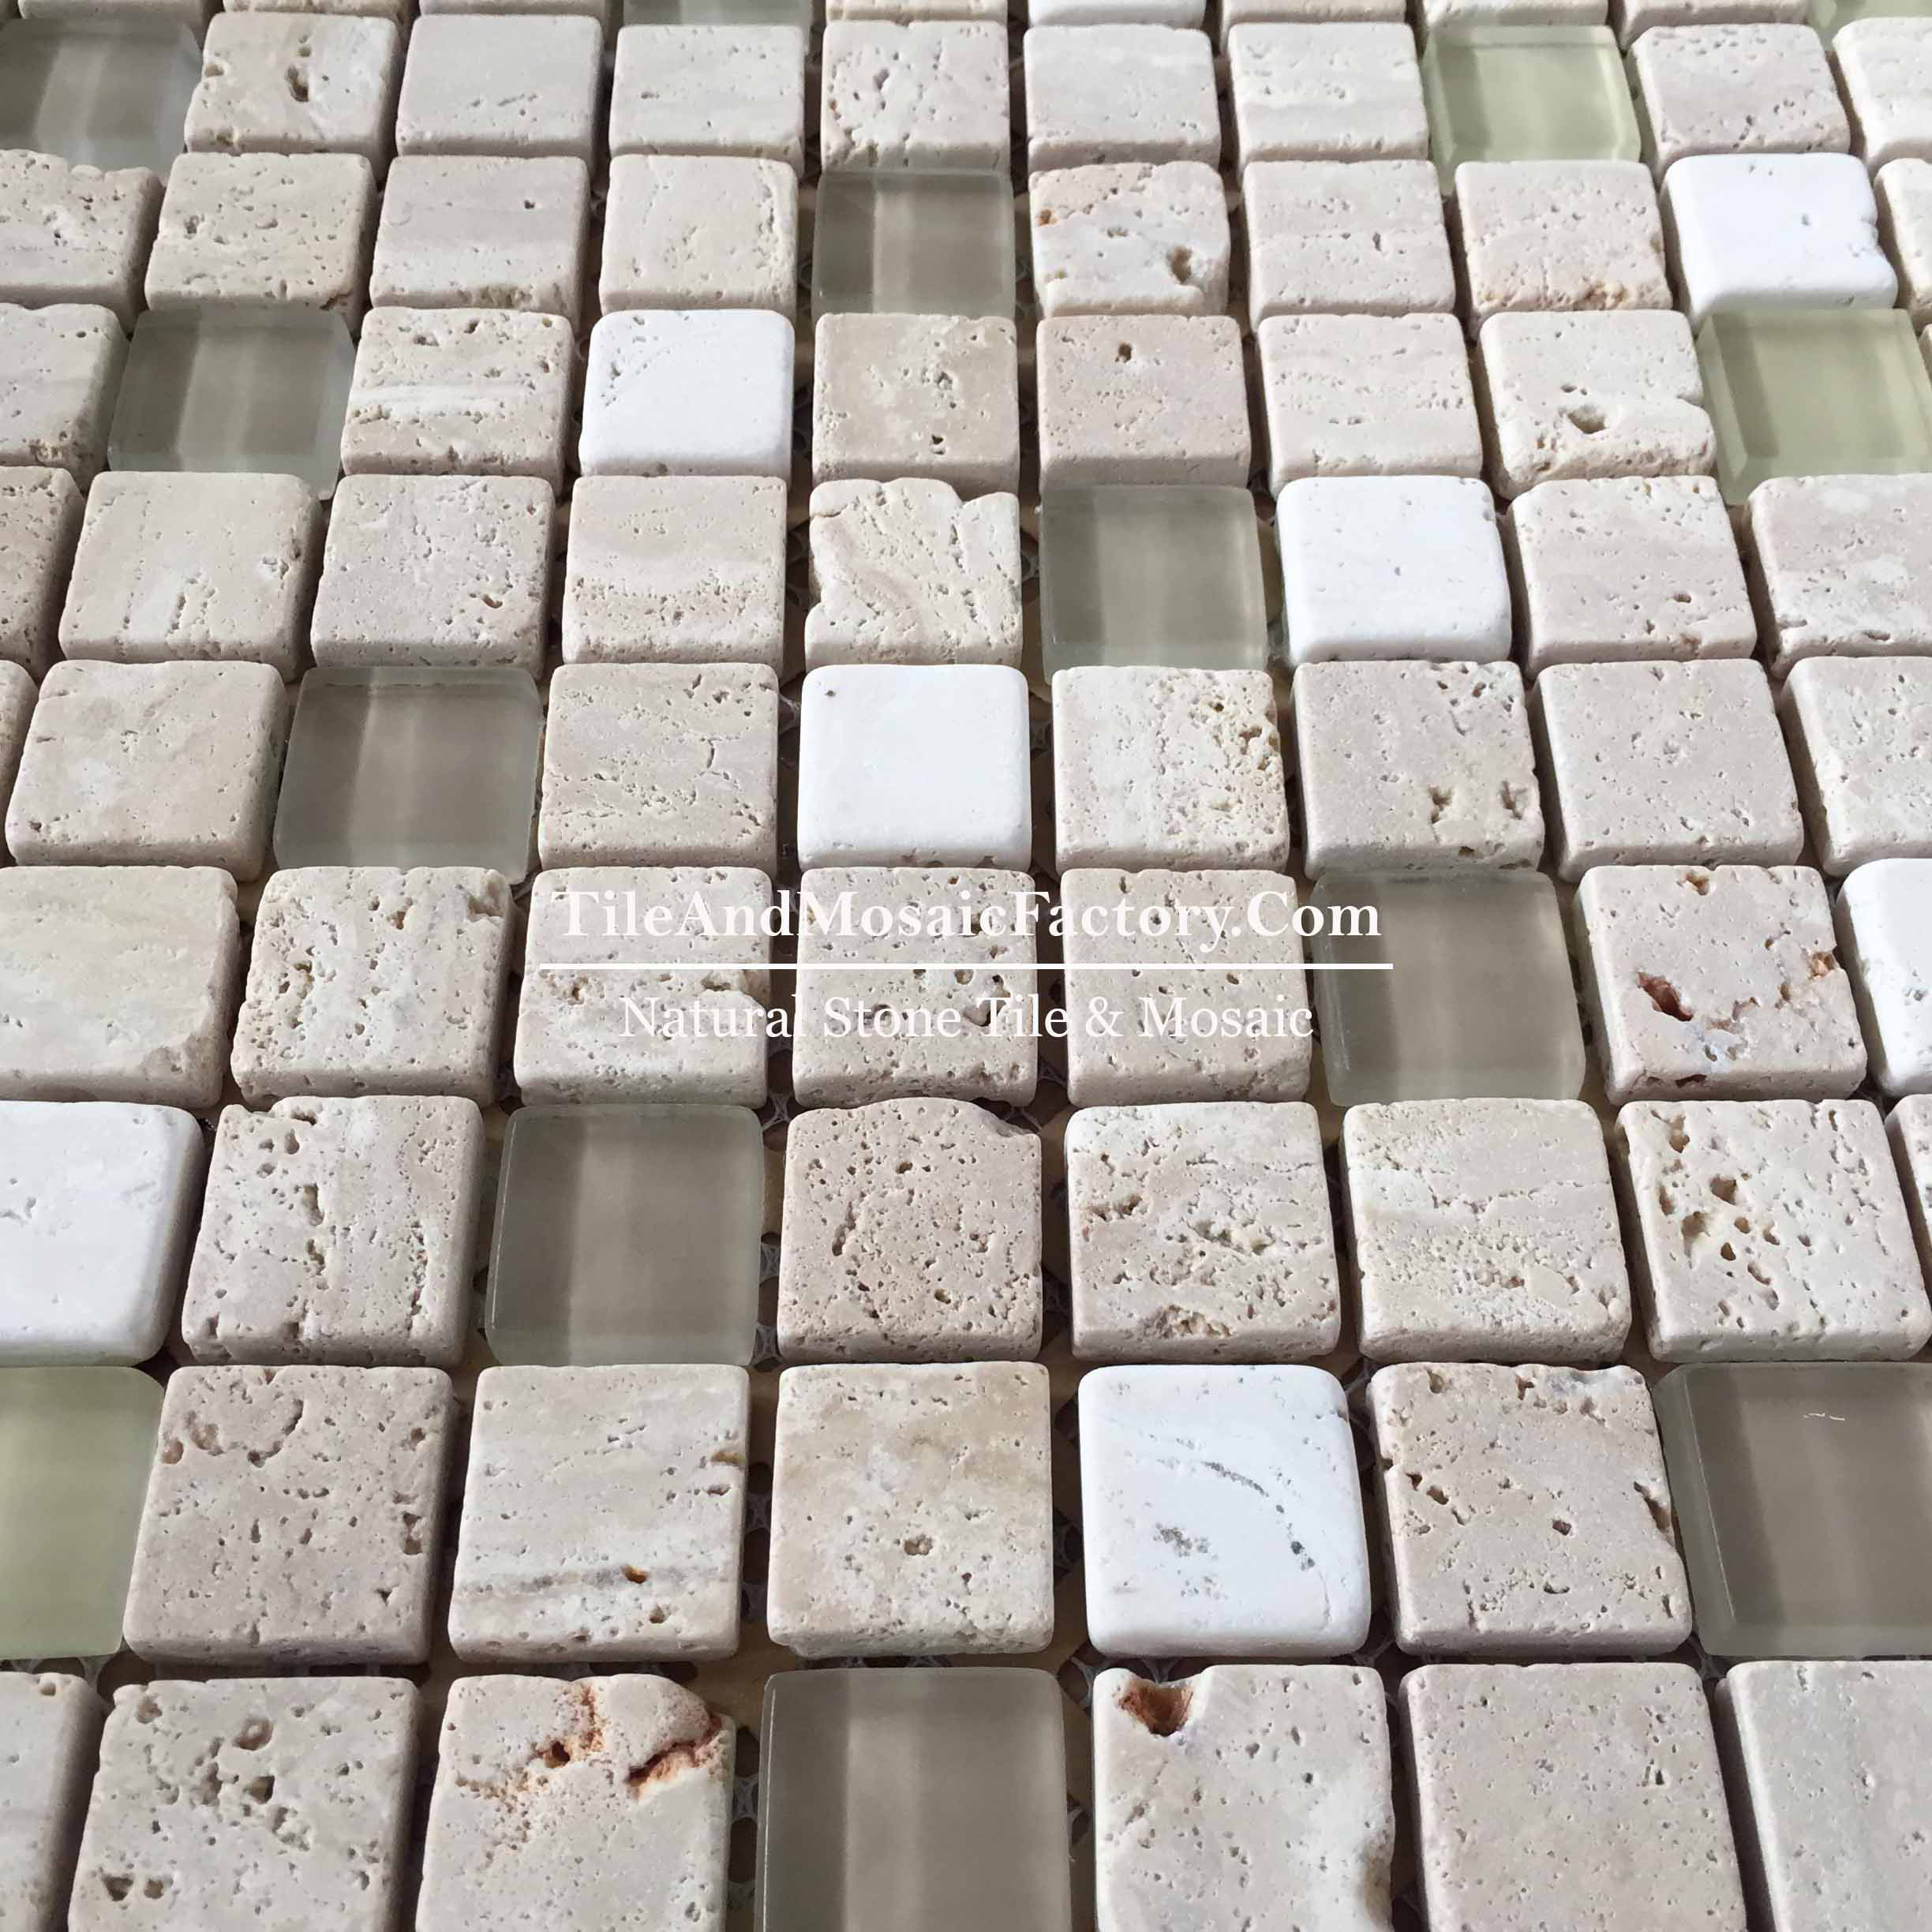 Light Travertine   Square 1x1 Tumbled w/Glass  Beige color Marble Mosaic